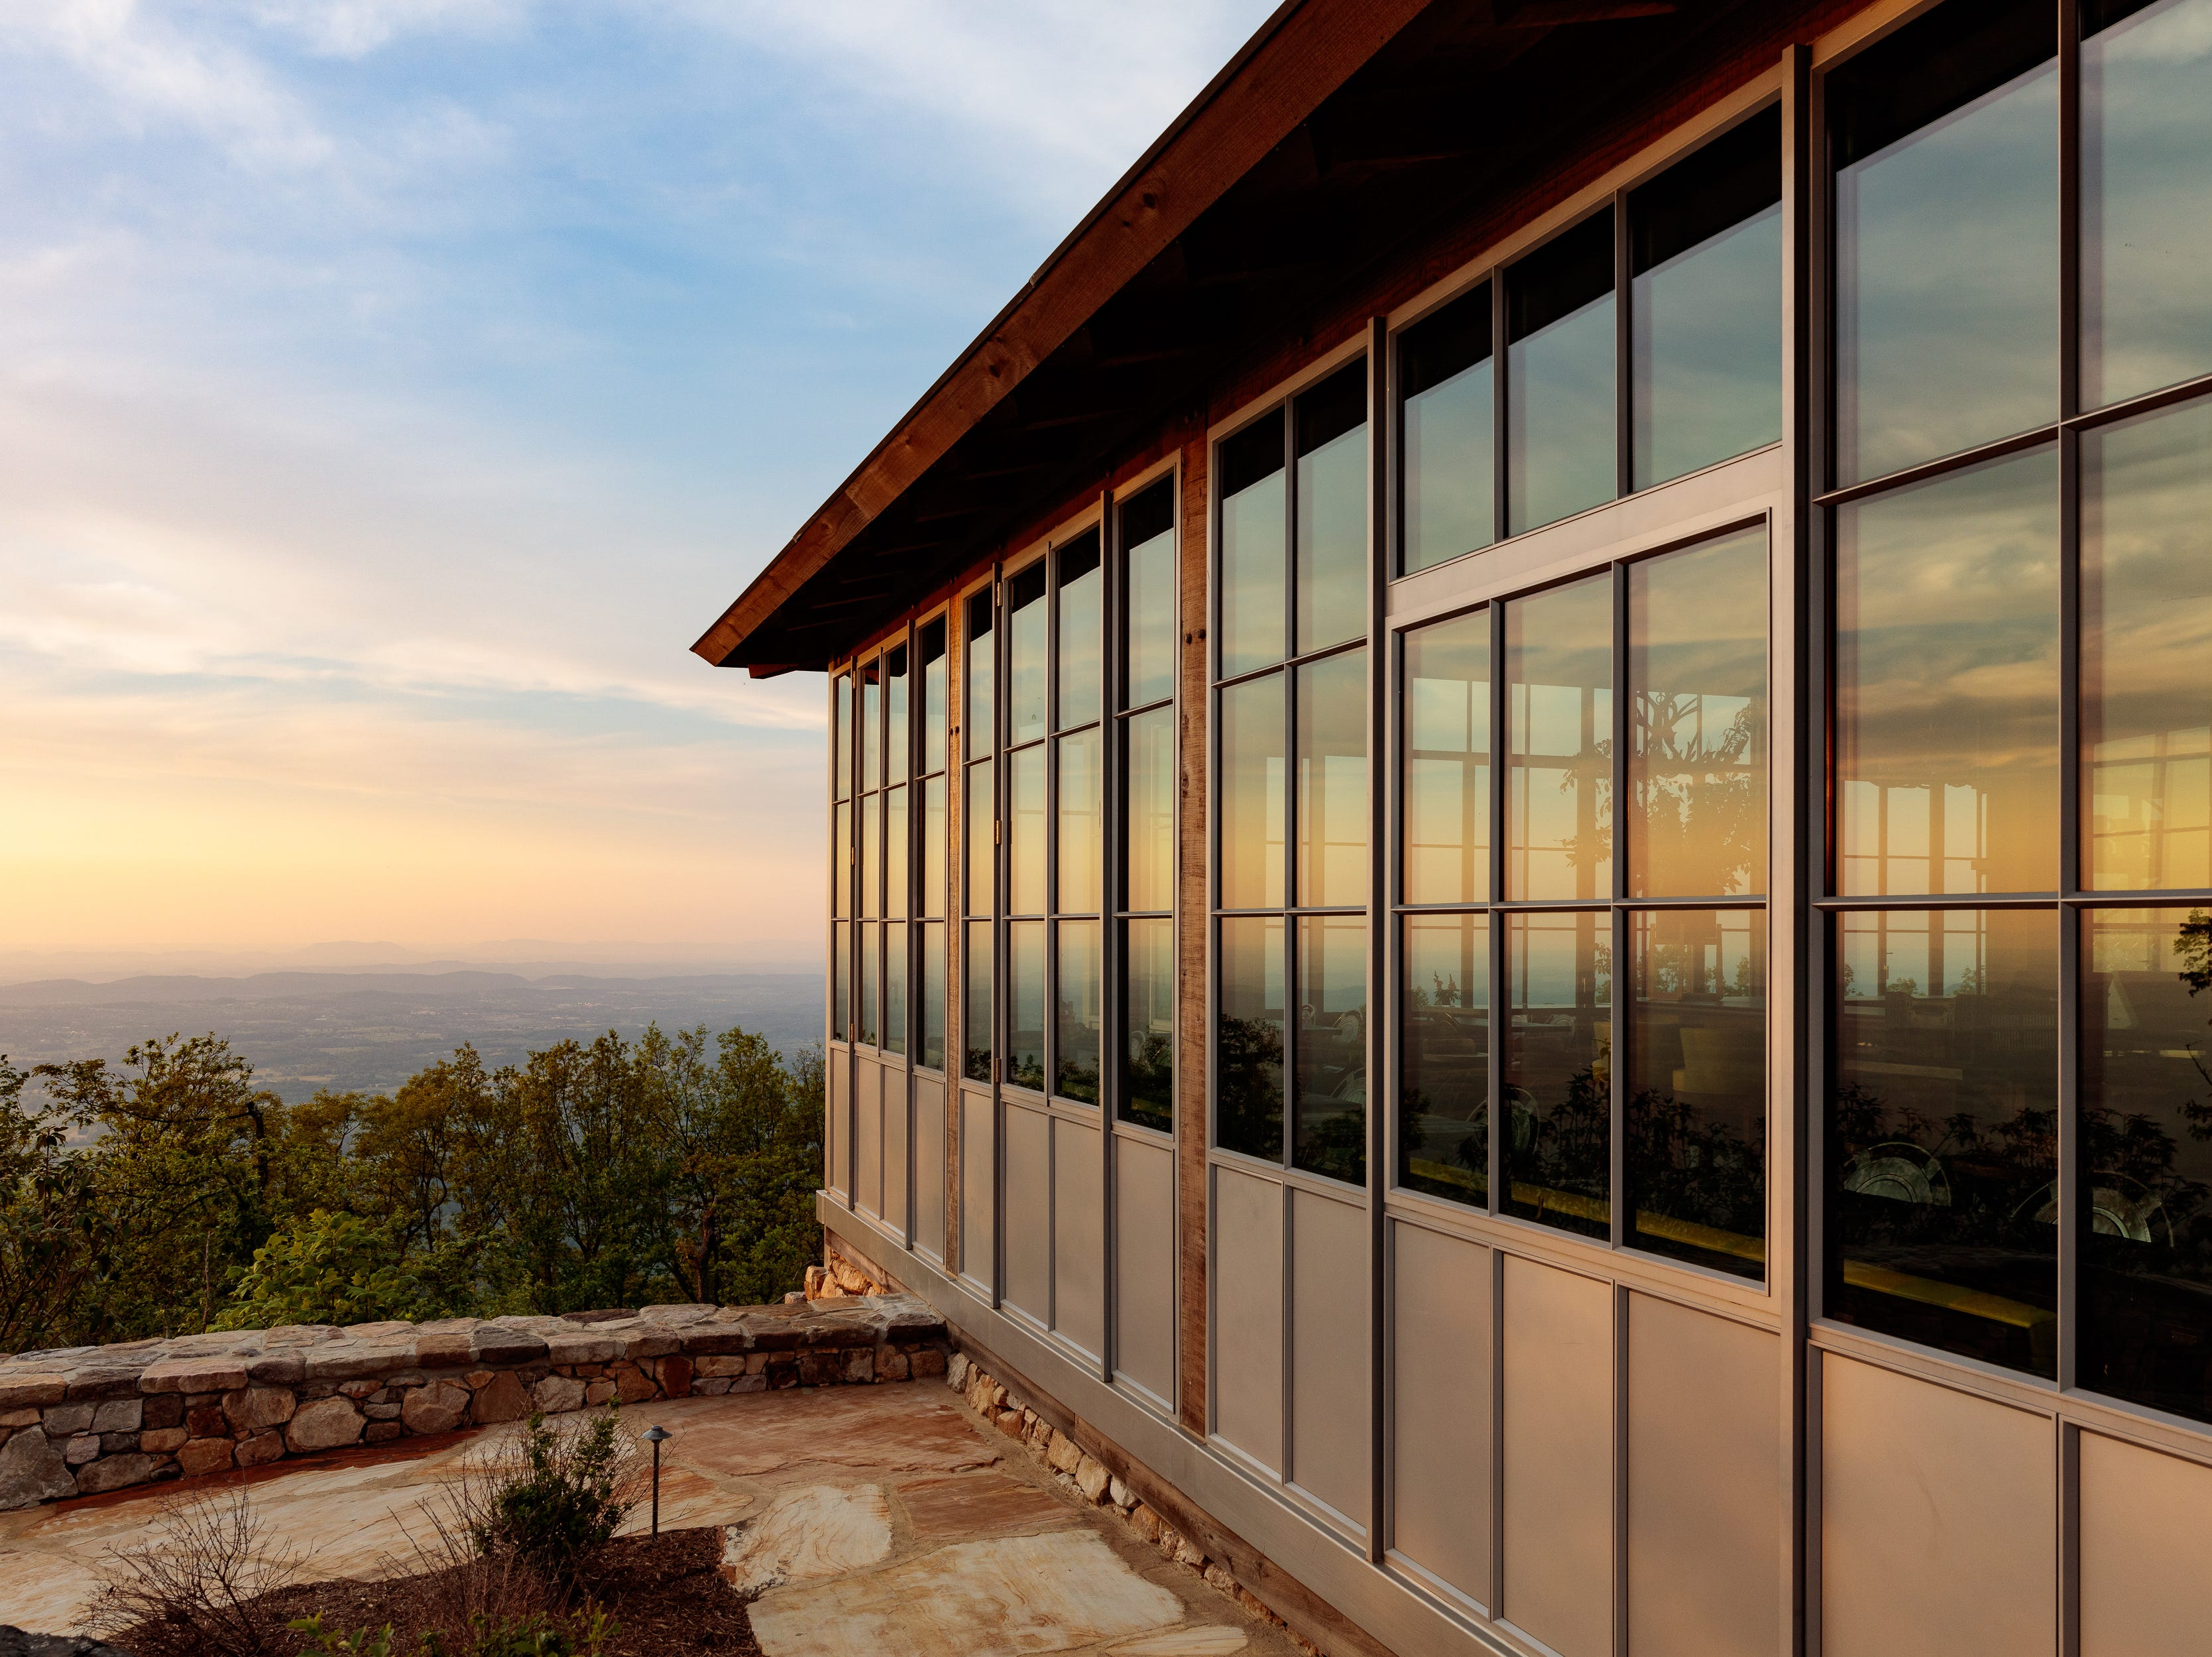 The exterior of Firetower, the casual restaurant serving breakfast, lunch and snacks at Blackberry Mountain, the wellness retreat opening in Feb. 2019 in Walland, Tennessee. It's the sister property to the acclaimed Blackberry Farm.